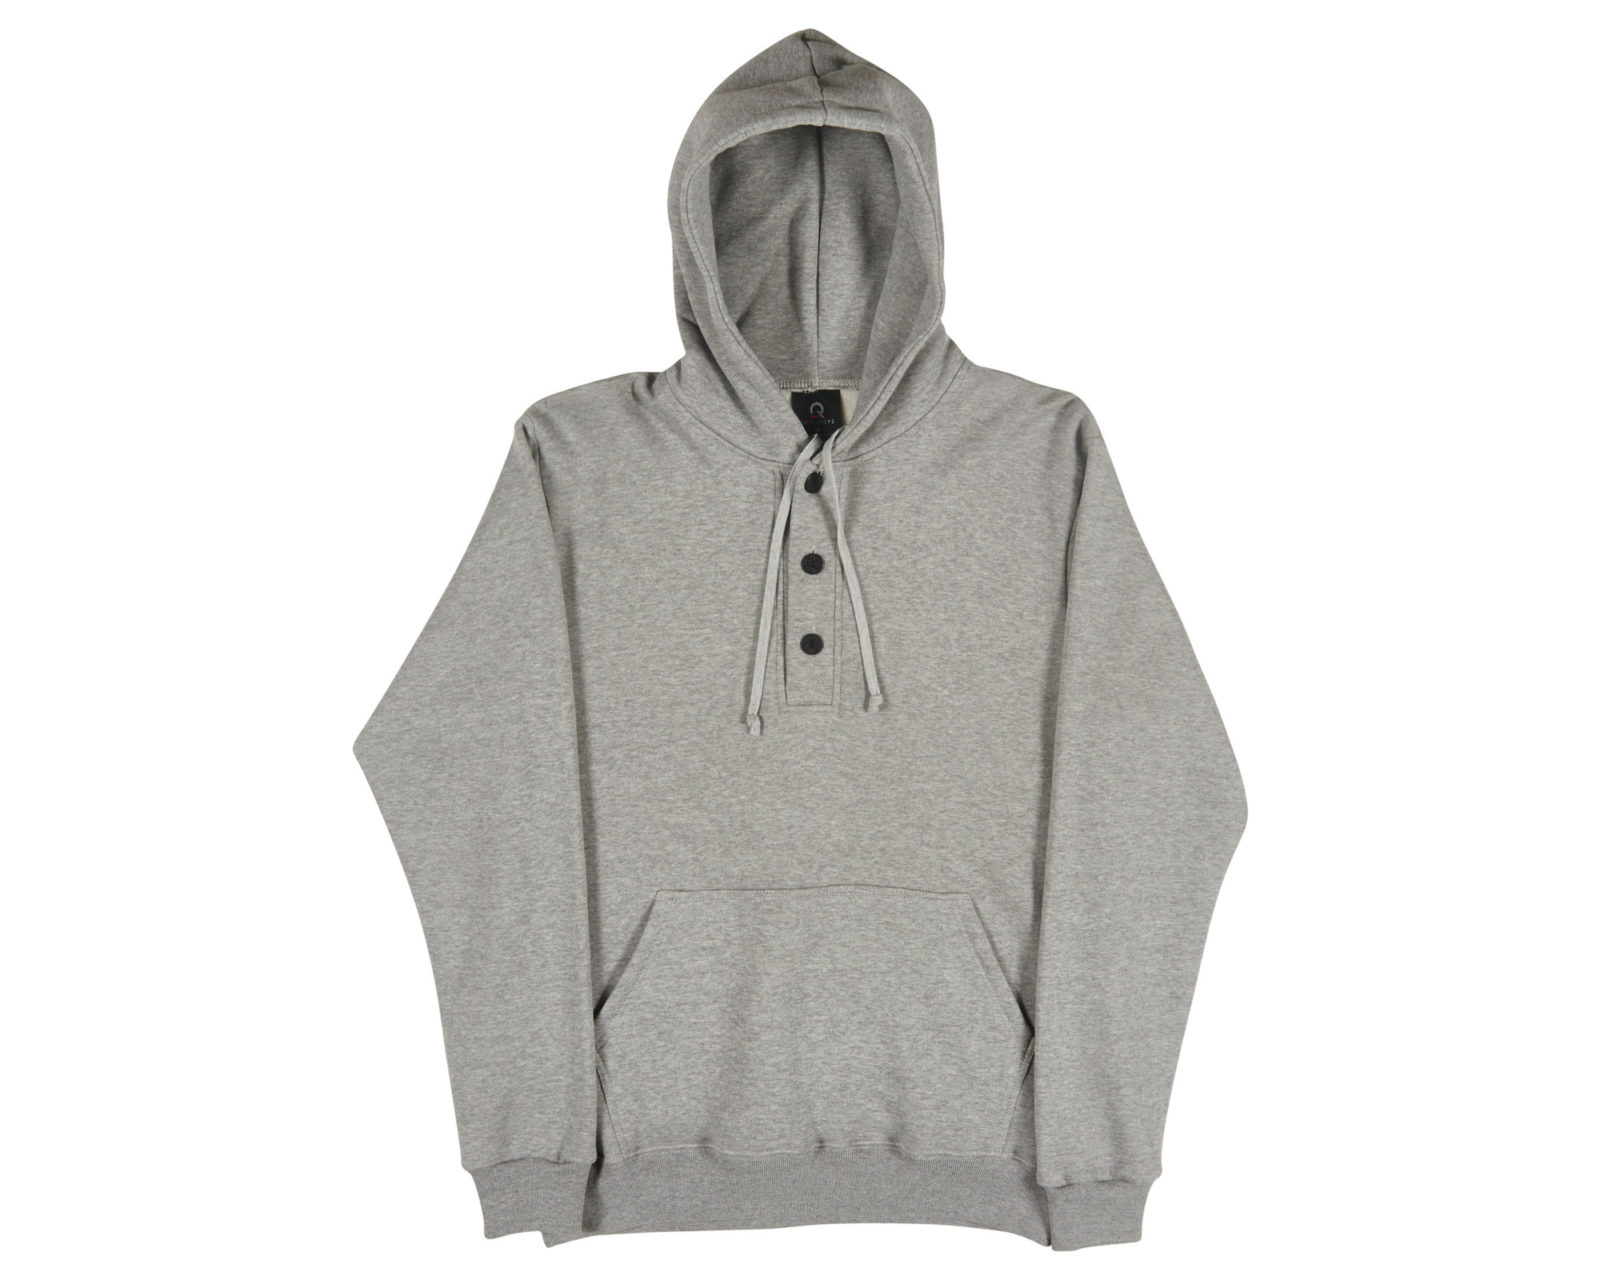 Qualitops Mens Henley Hoodie Polycotton Australian made clothing